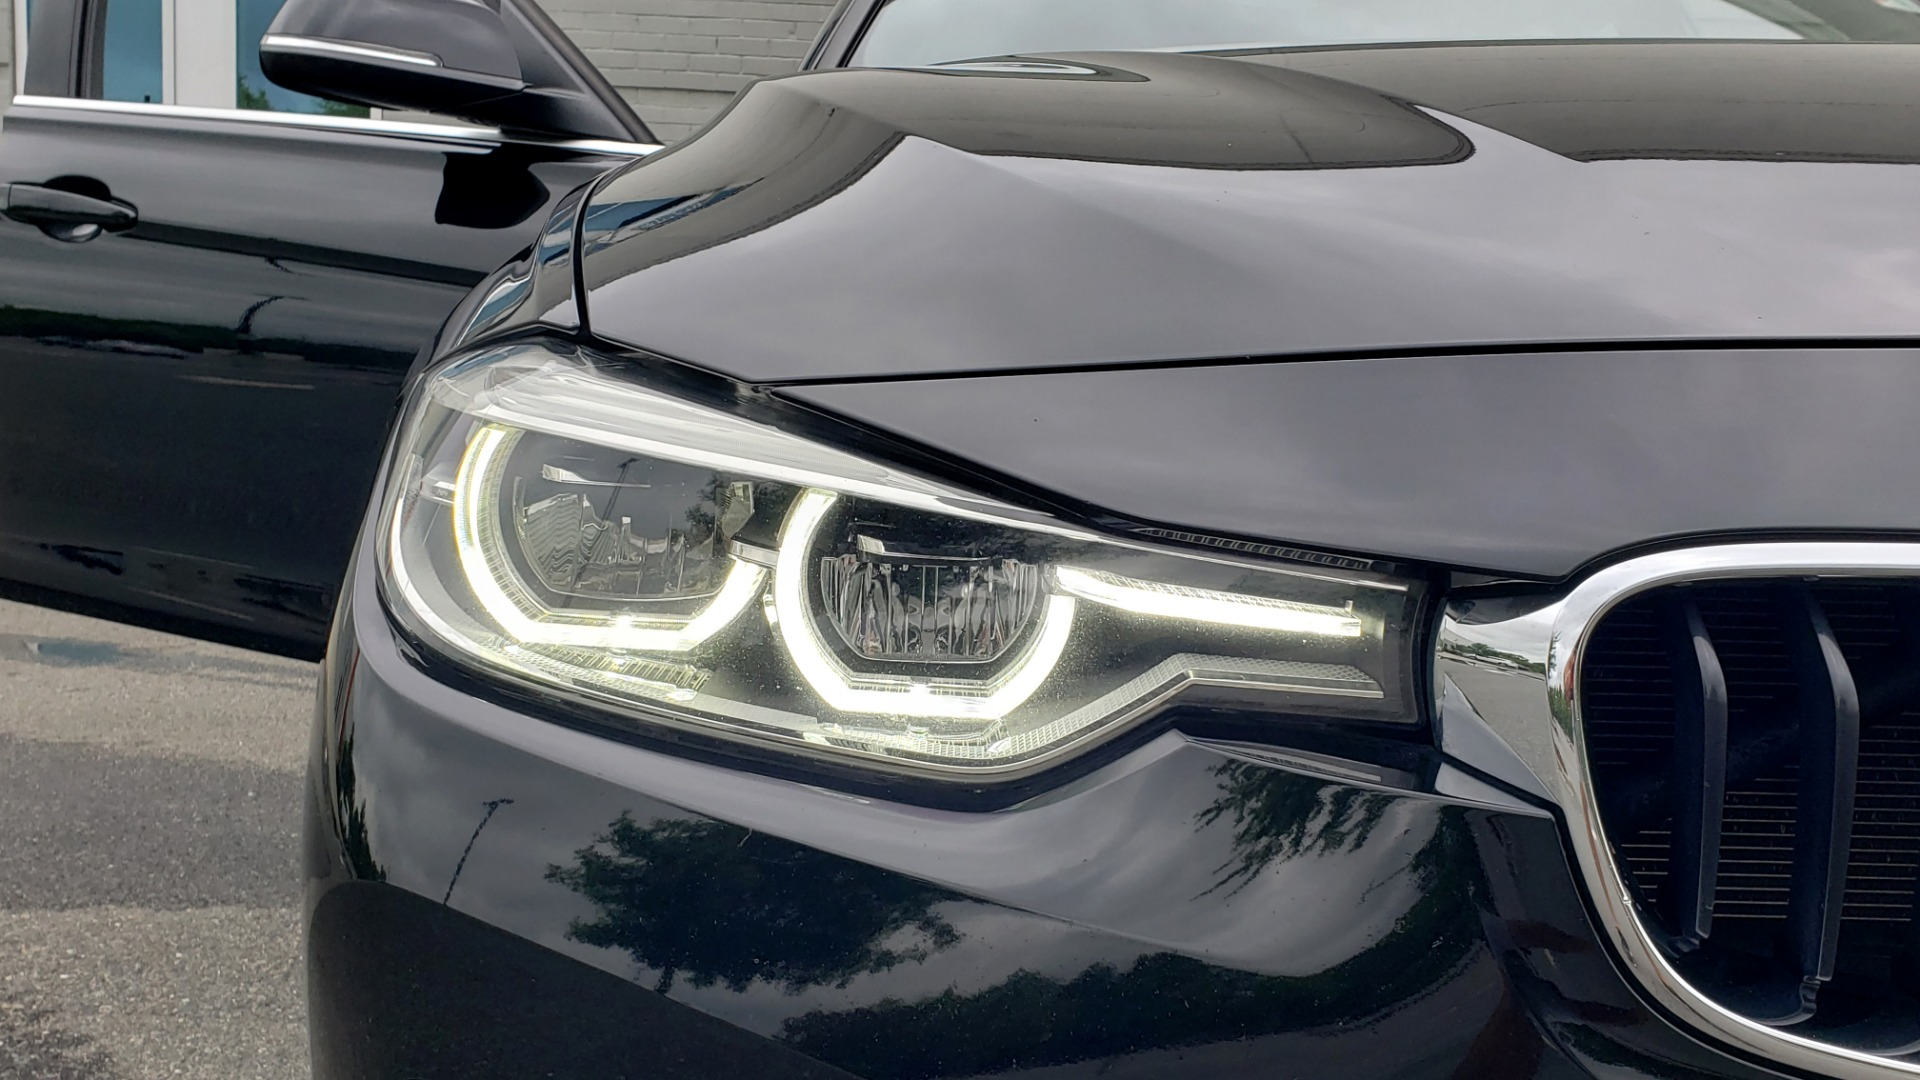 Used 2018 BMW 3 SERIES 330IXDRIVE / CONV PKG / NAV / SUNROOF / HTD STS / REARVIEW for sale $26,552 at Formula Imports in Charlotte NC 28227 20